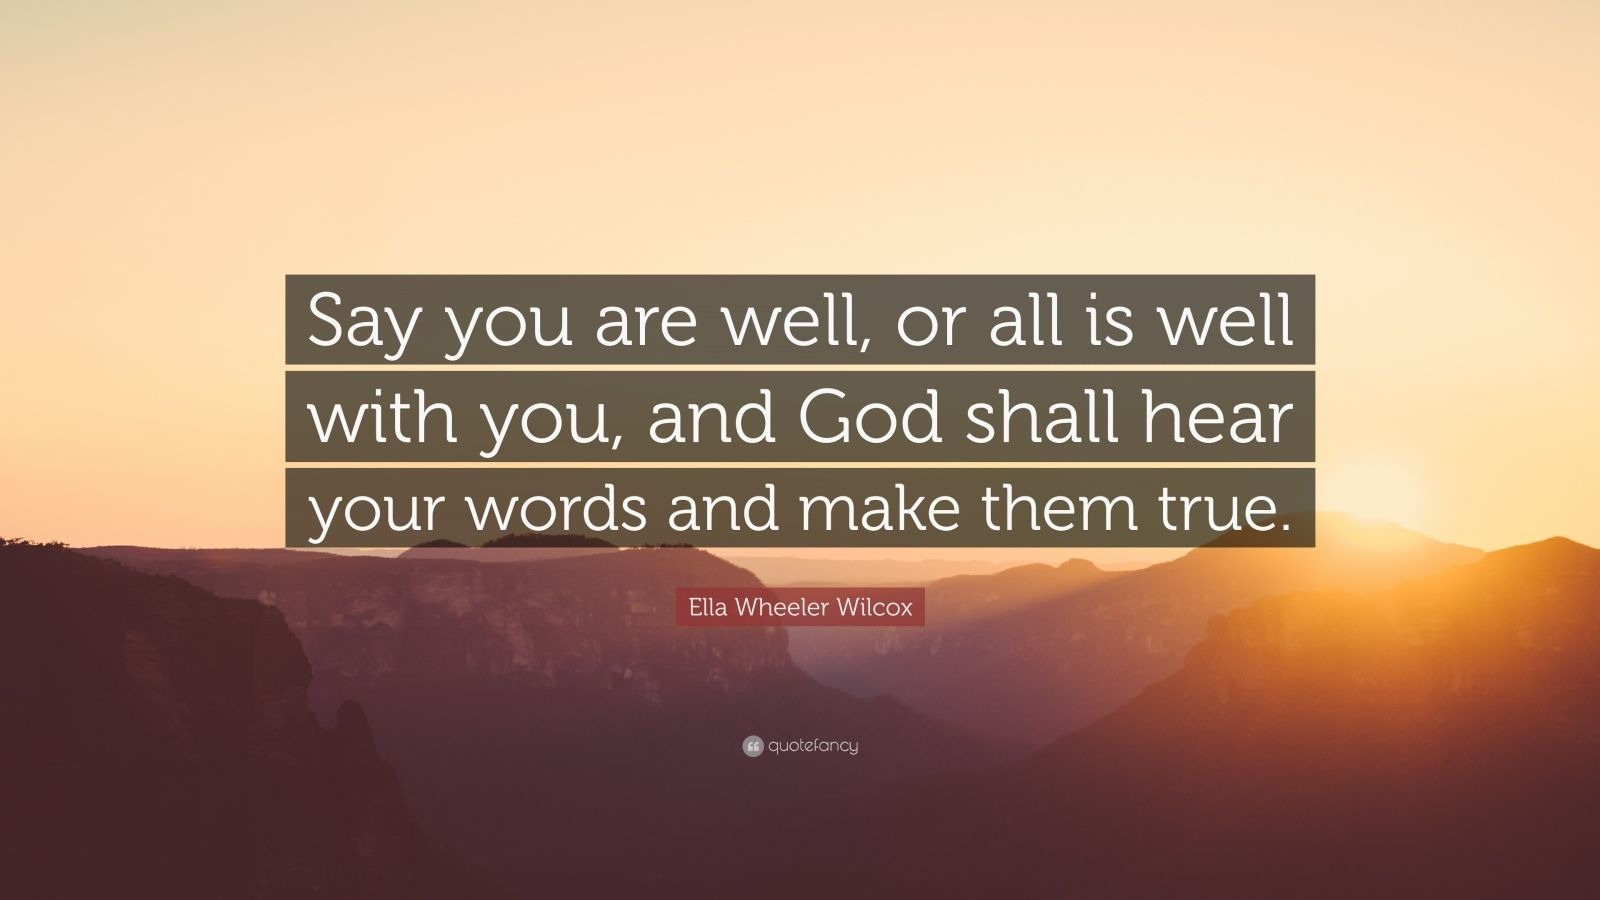 """Ella Wheeler Wilcox Quote: """"Say you are well, or all is well with you, and God shall hear your words and make them true."""""""